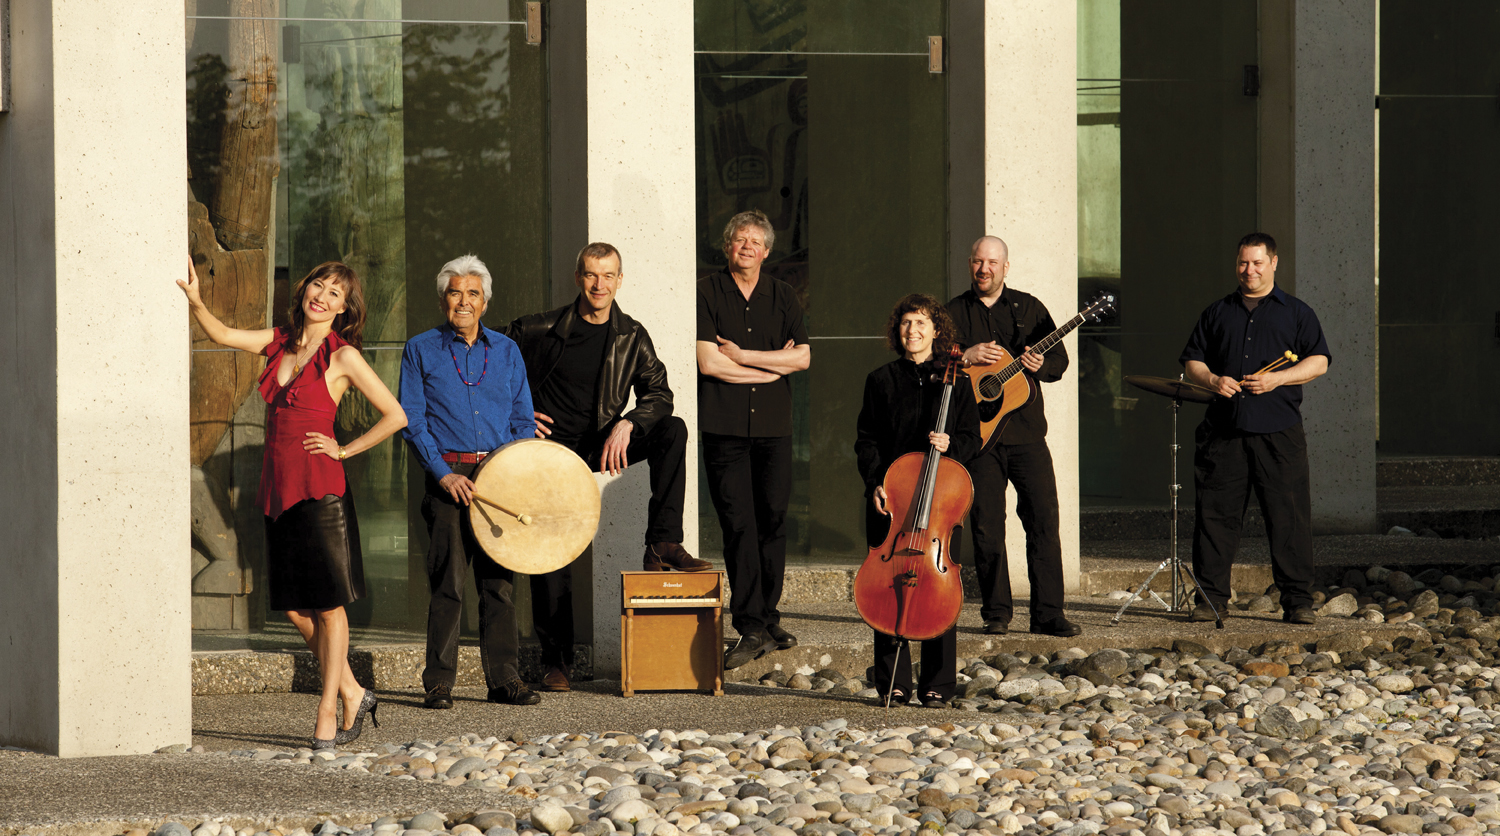 Album musicians - left to right: Terri-Lynn Williams-Davidson, Robert Davidson (hand drum), Simon Kendall (keyboards), Bruce Ruddell (producer and arrangements), Sue Round (cello), Dave Corman (guitar), Jason Ovary (percussion).